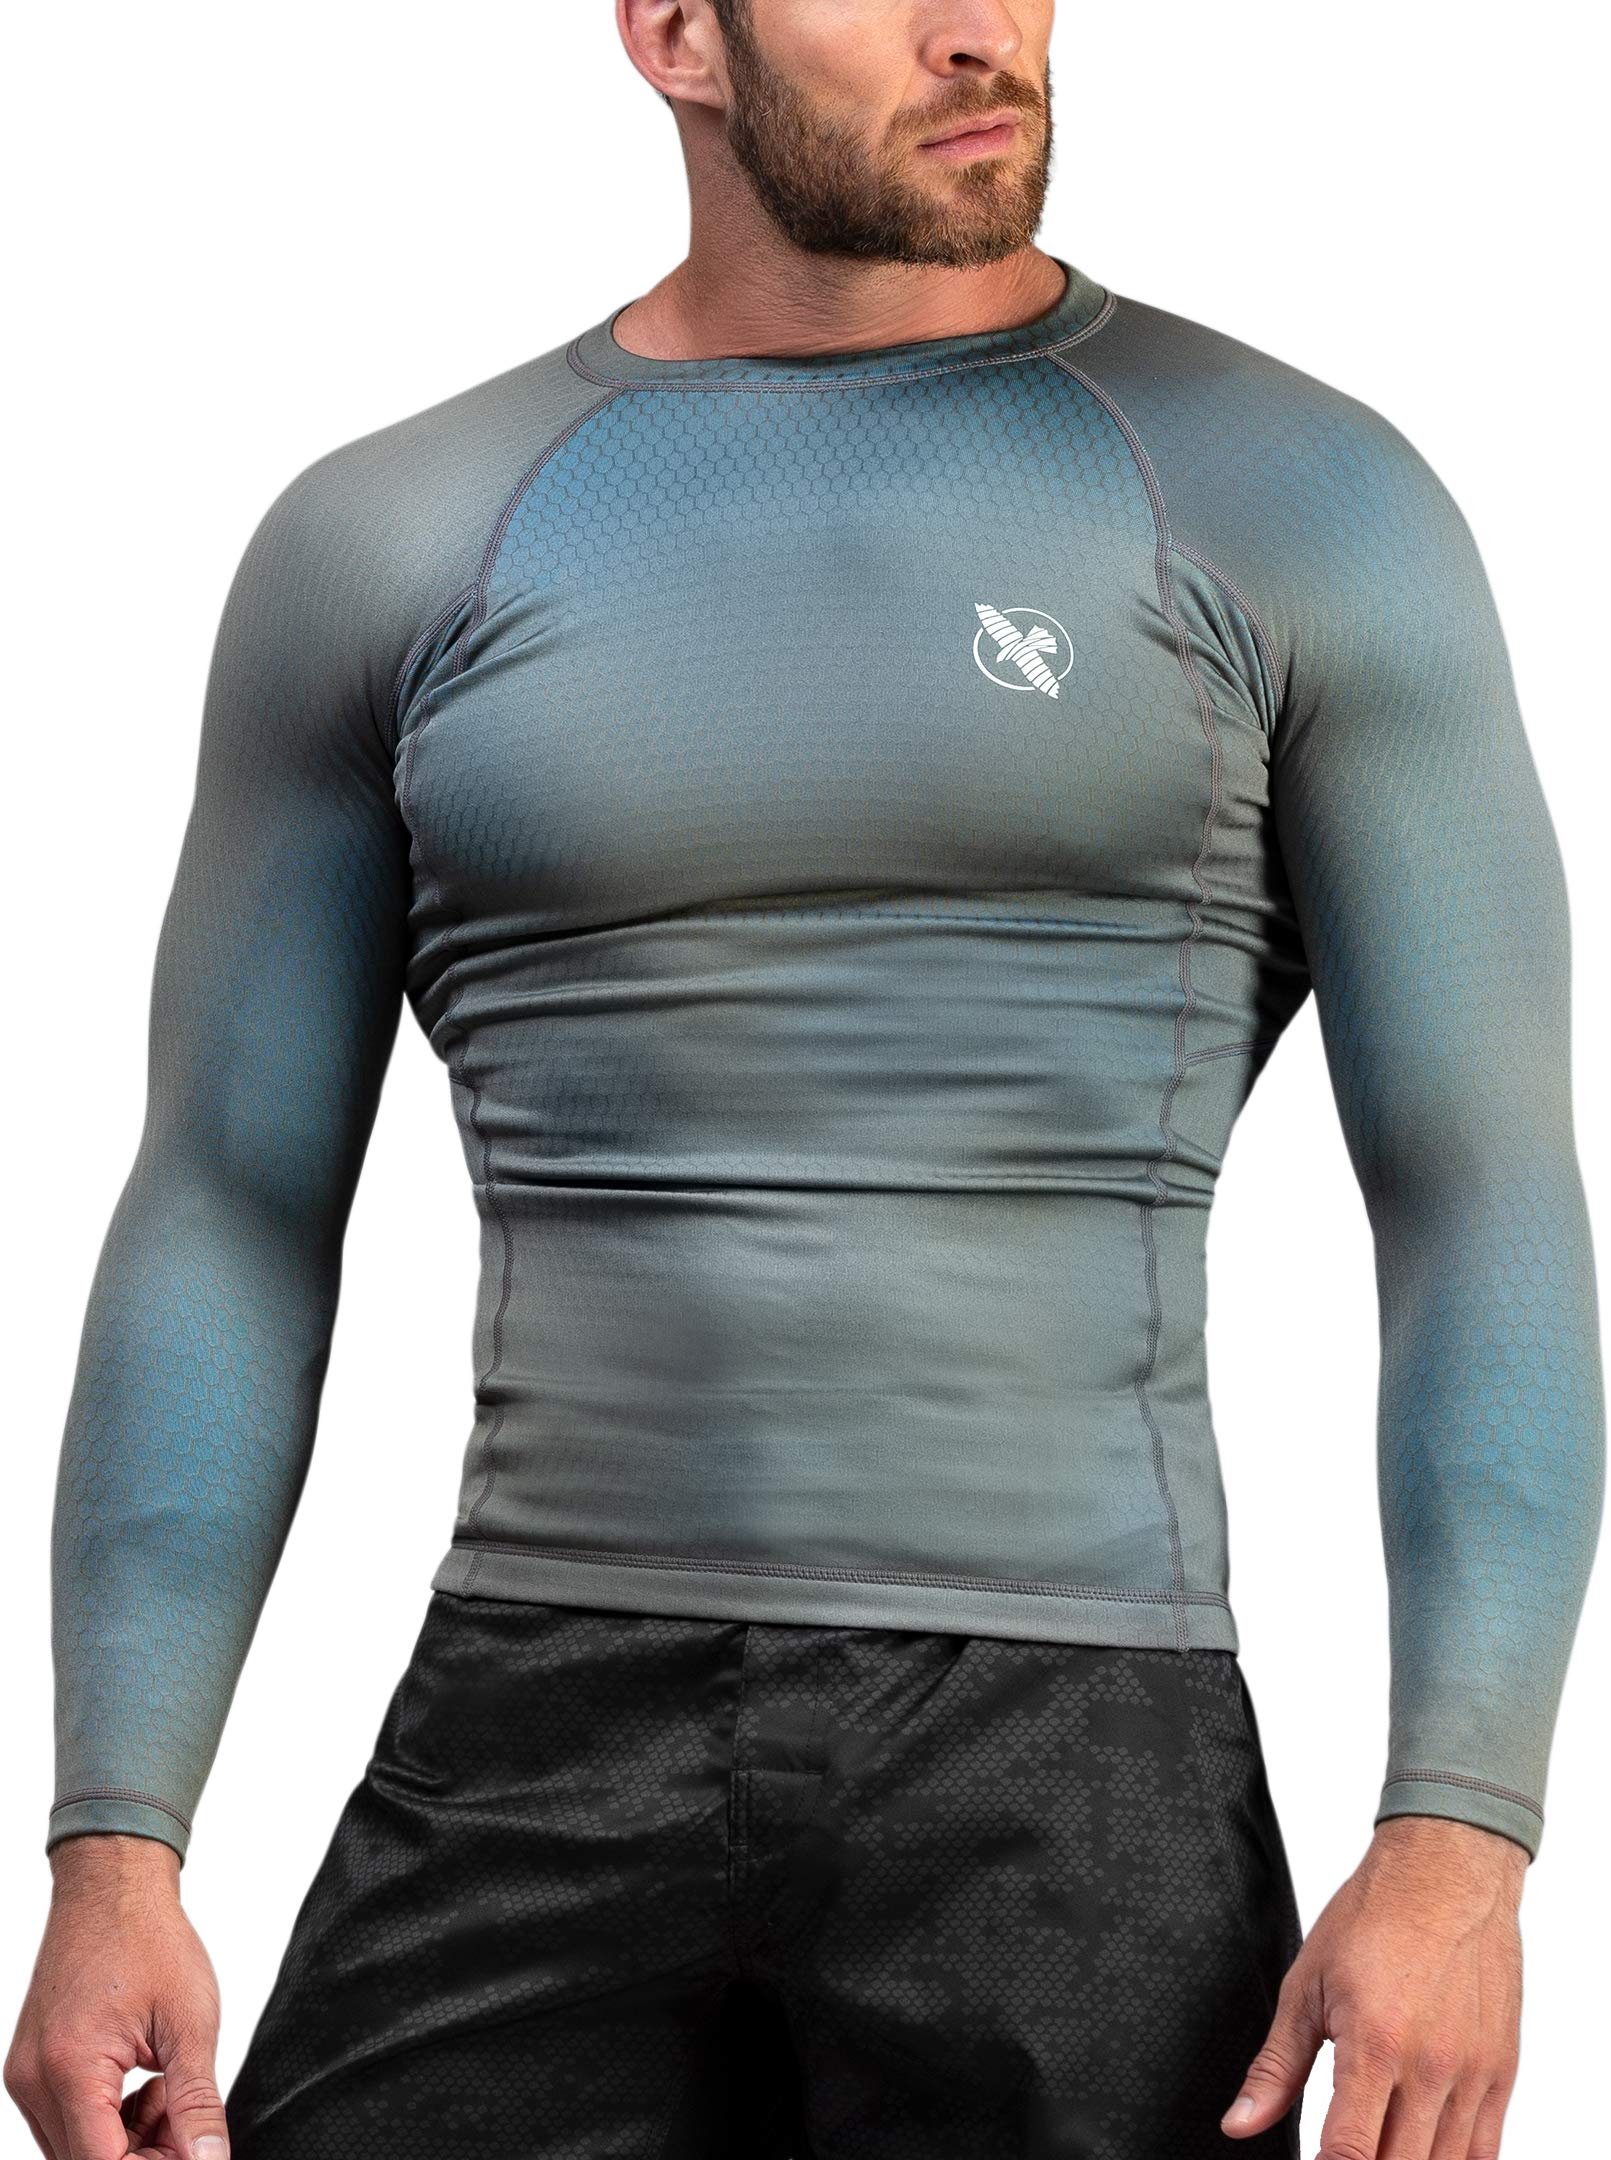 Hayabusa | Men's Fusion Long Sleeve BJJ Rash Guard | Grey/Aqua | L by Hayabusa